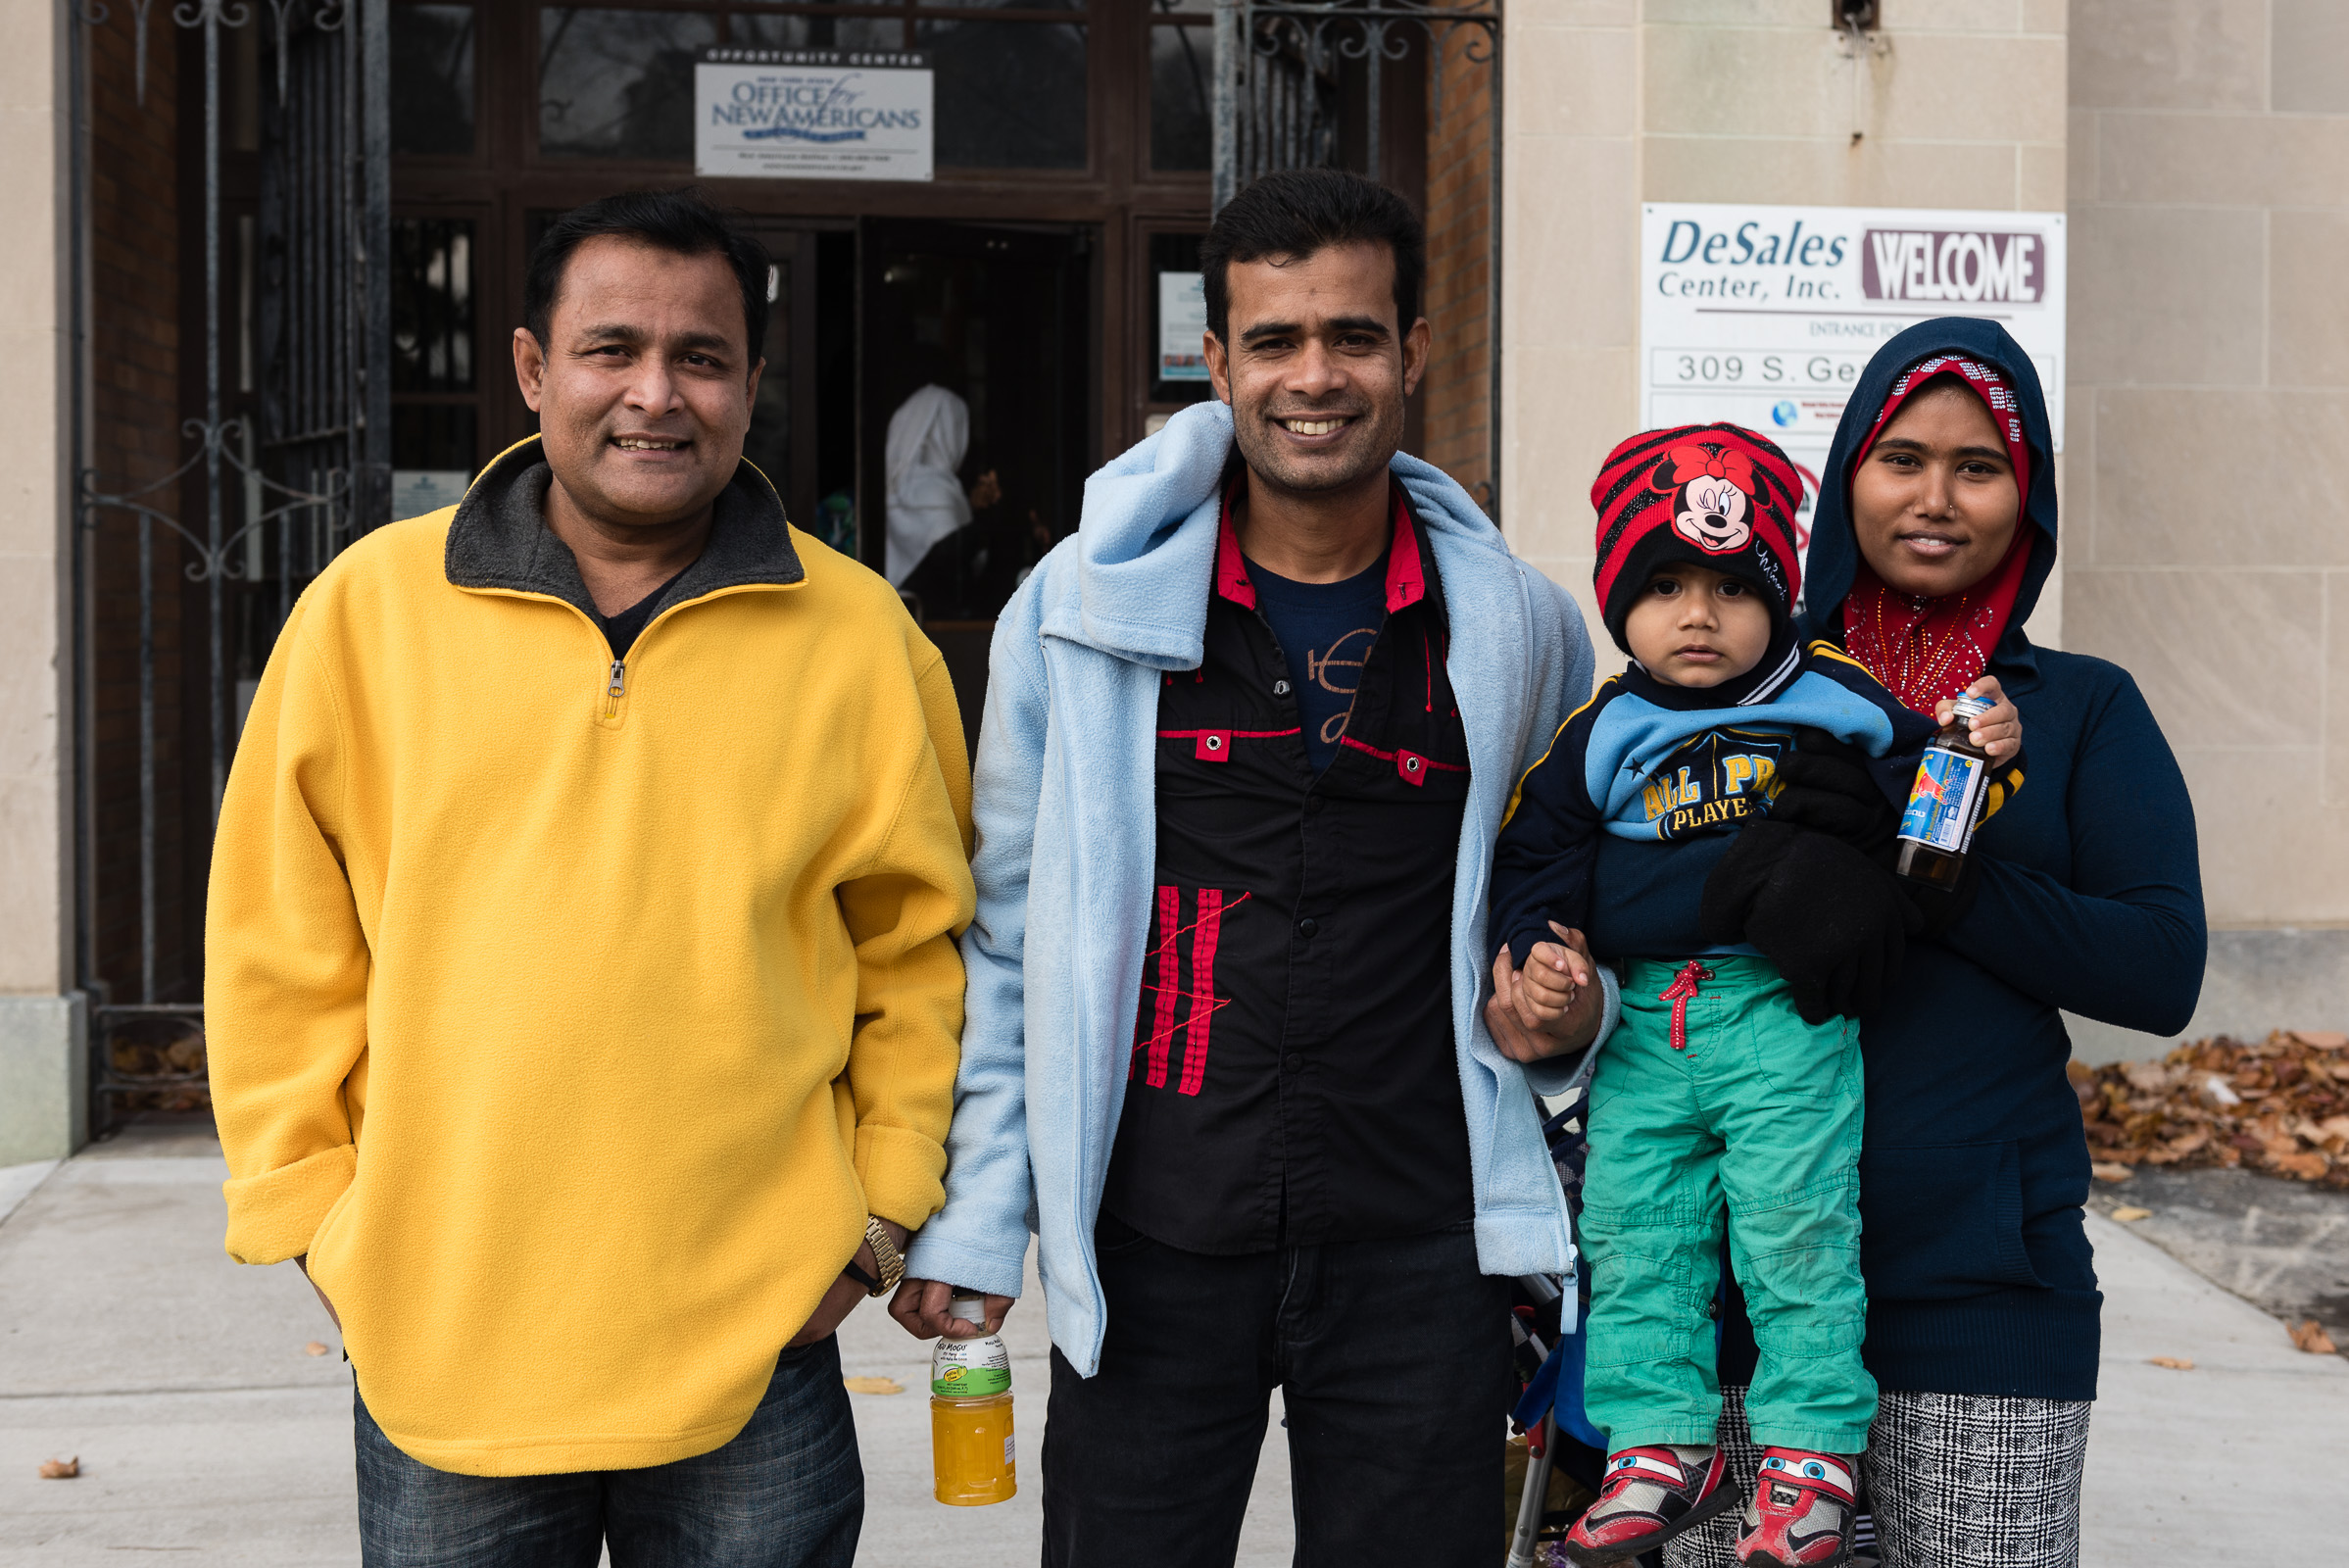 Nor Kalimullah (center) stands with his friend Abdul Alim (left) and Alim's wife and child, Jaura and Abdul (right), outside the entrance to the Mohawk Valley Resource Center for Refugees in Utica, New York. Joseph Ryder